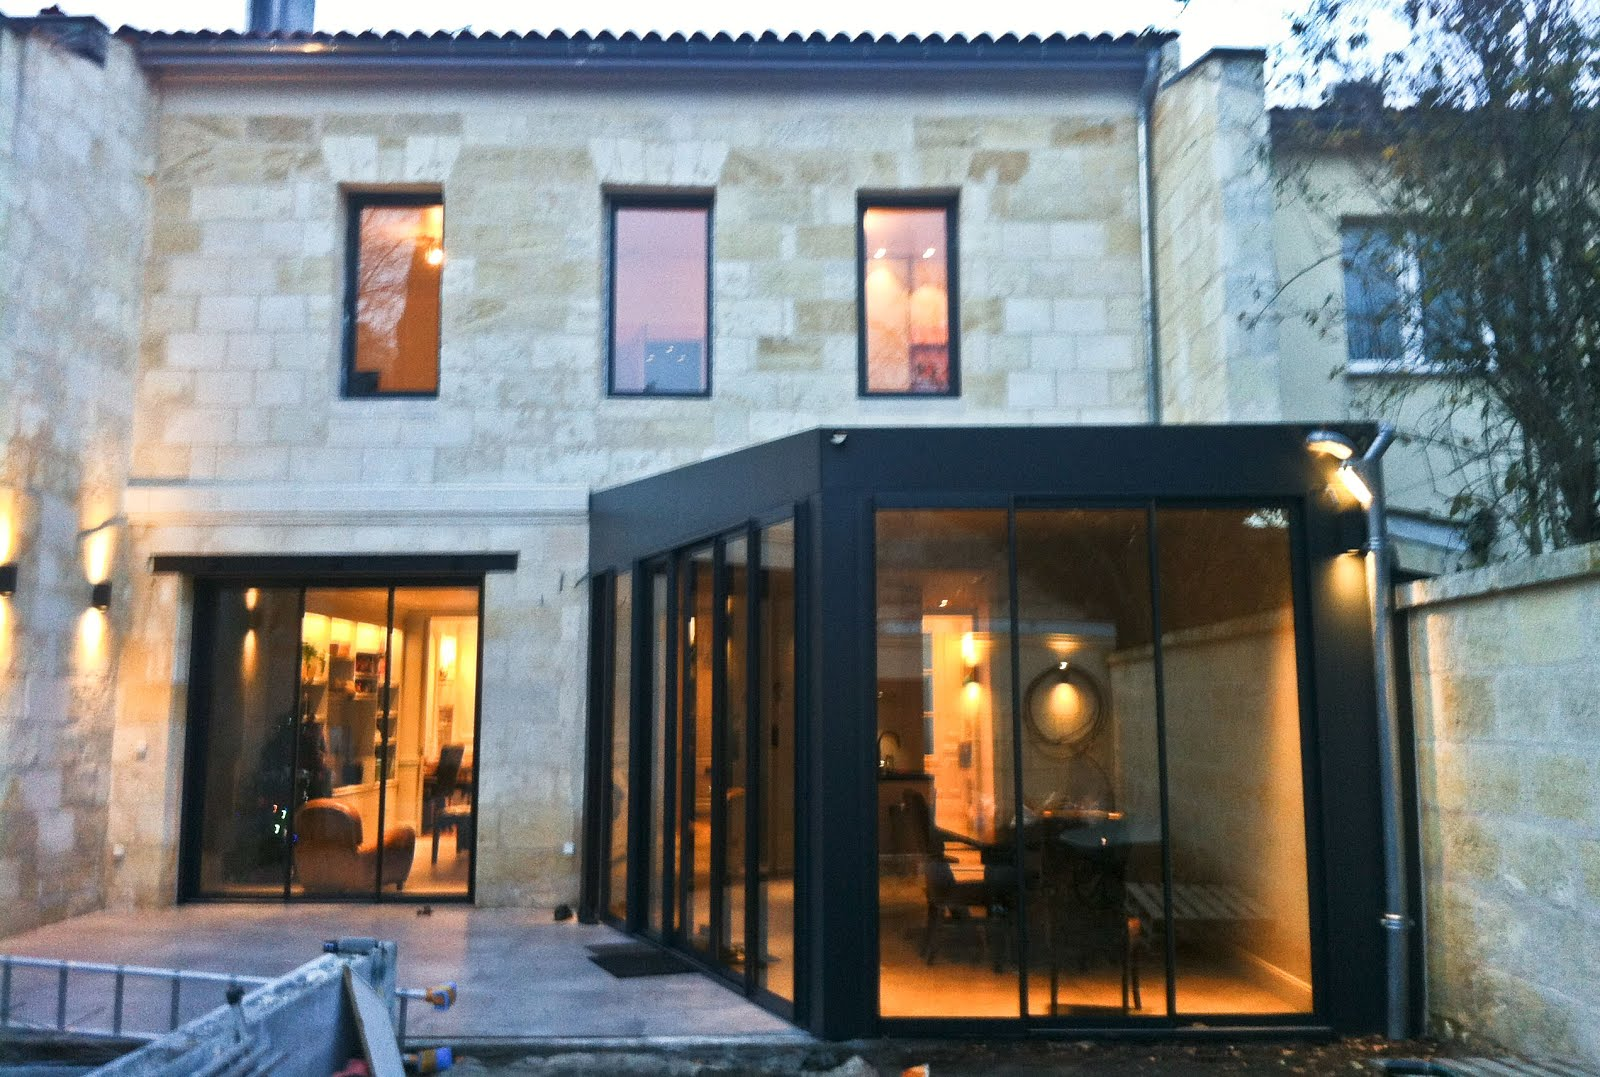 Renovation echoppe bordelaise projet choppe bordeaux - Maison architecte interieur ...